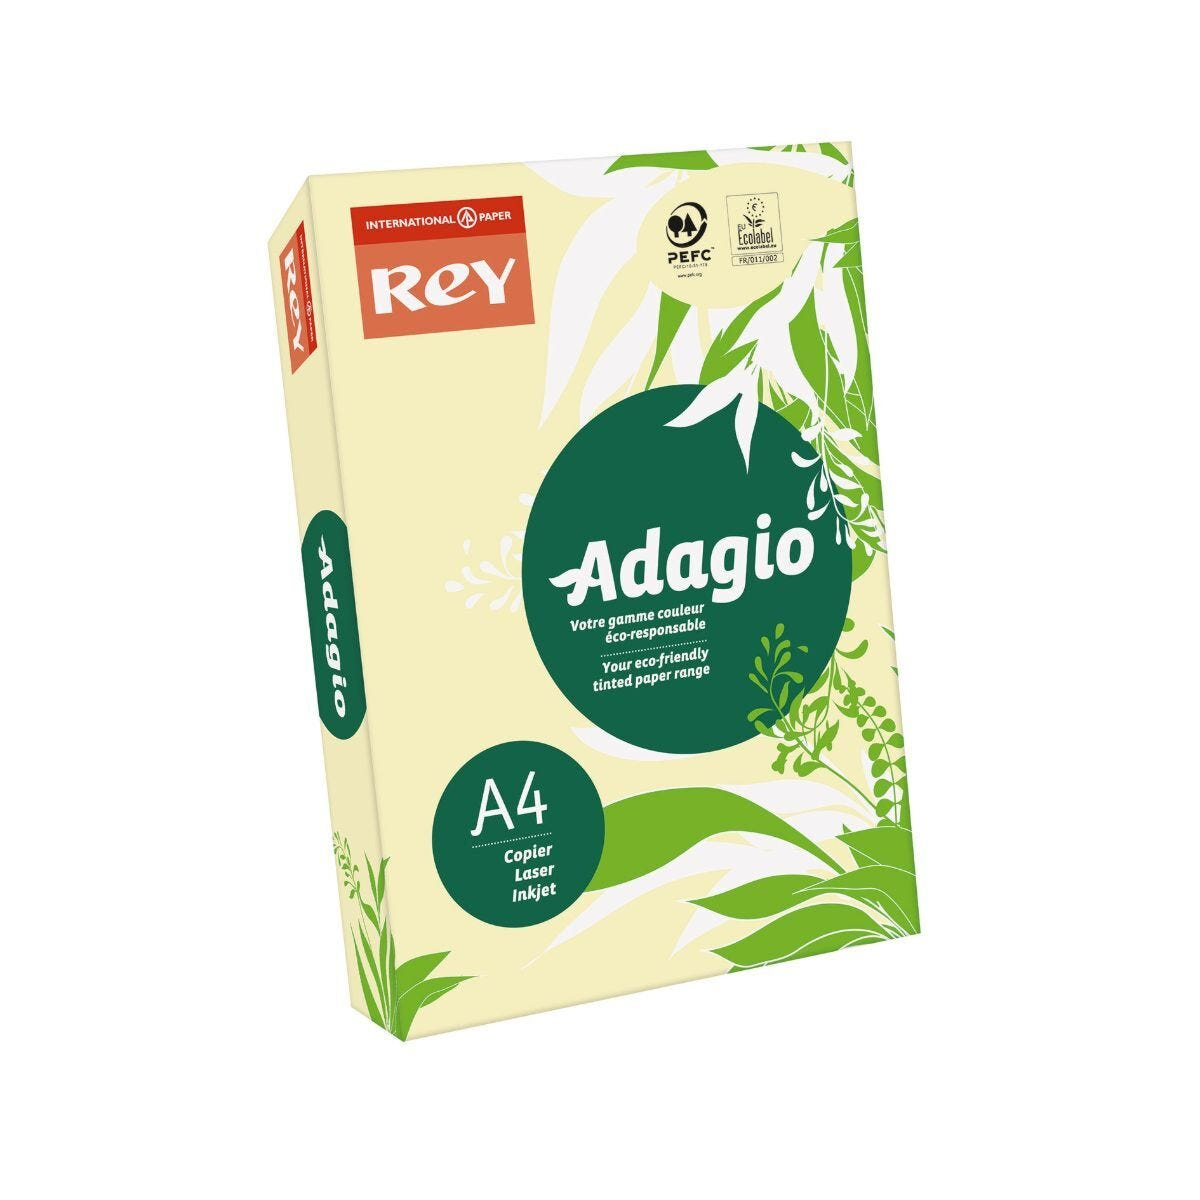 Rey Adagio Ream of Paper Pastel Coloured A4 80gsm 500 Sheets Canary